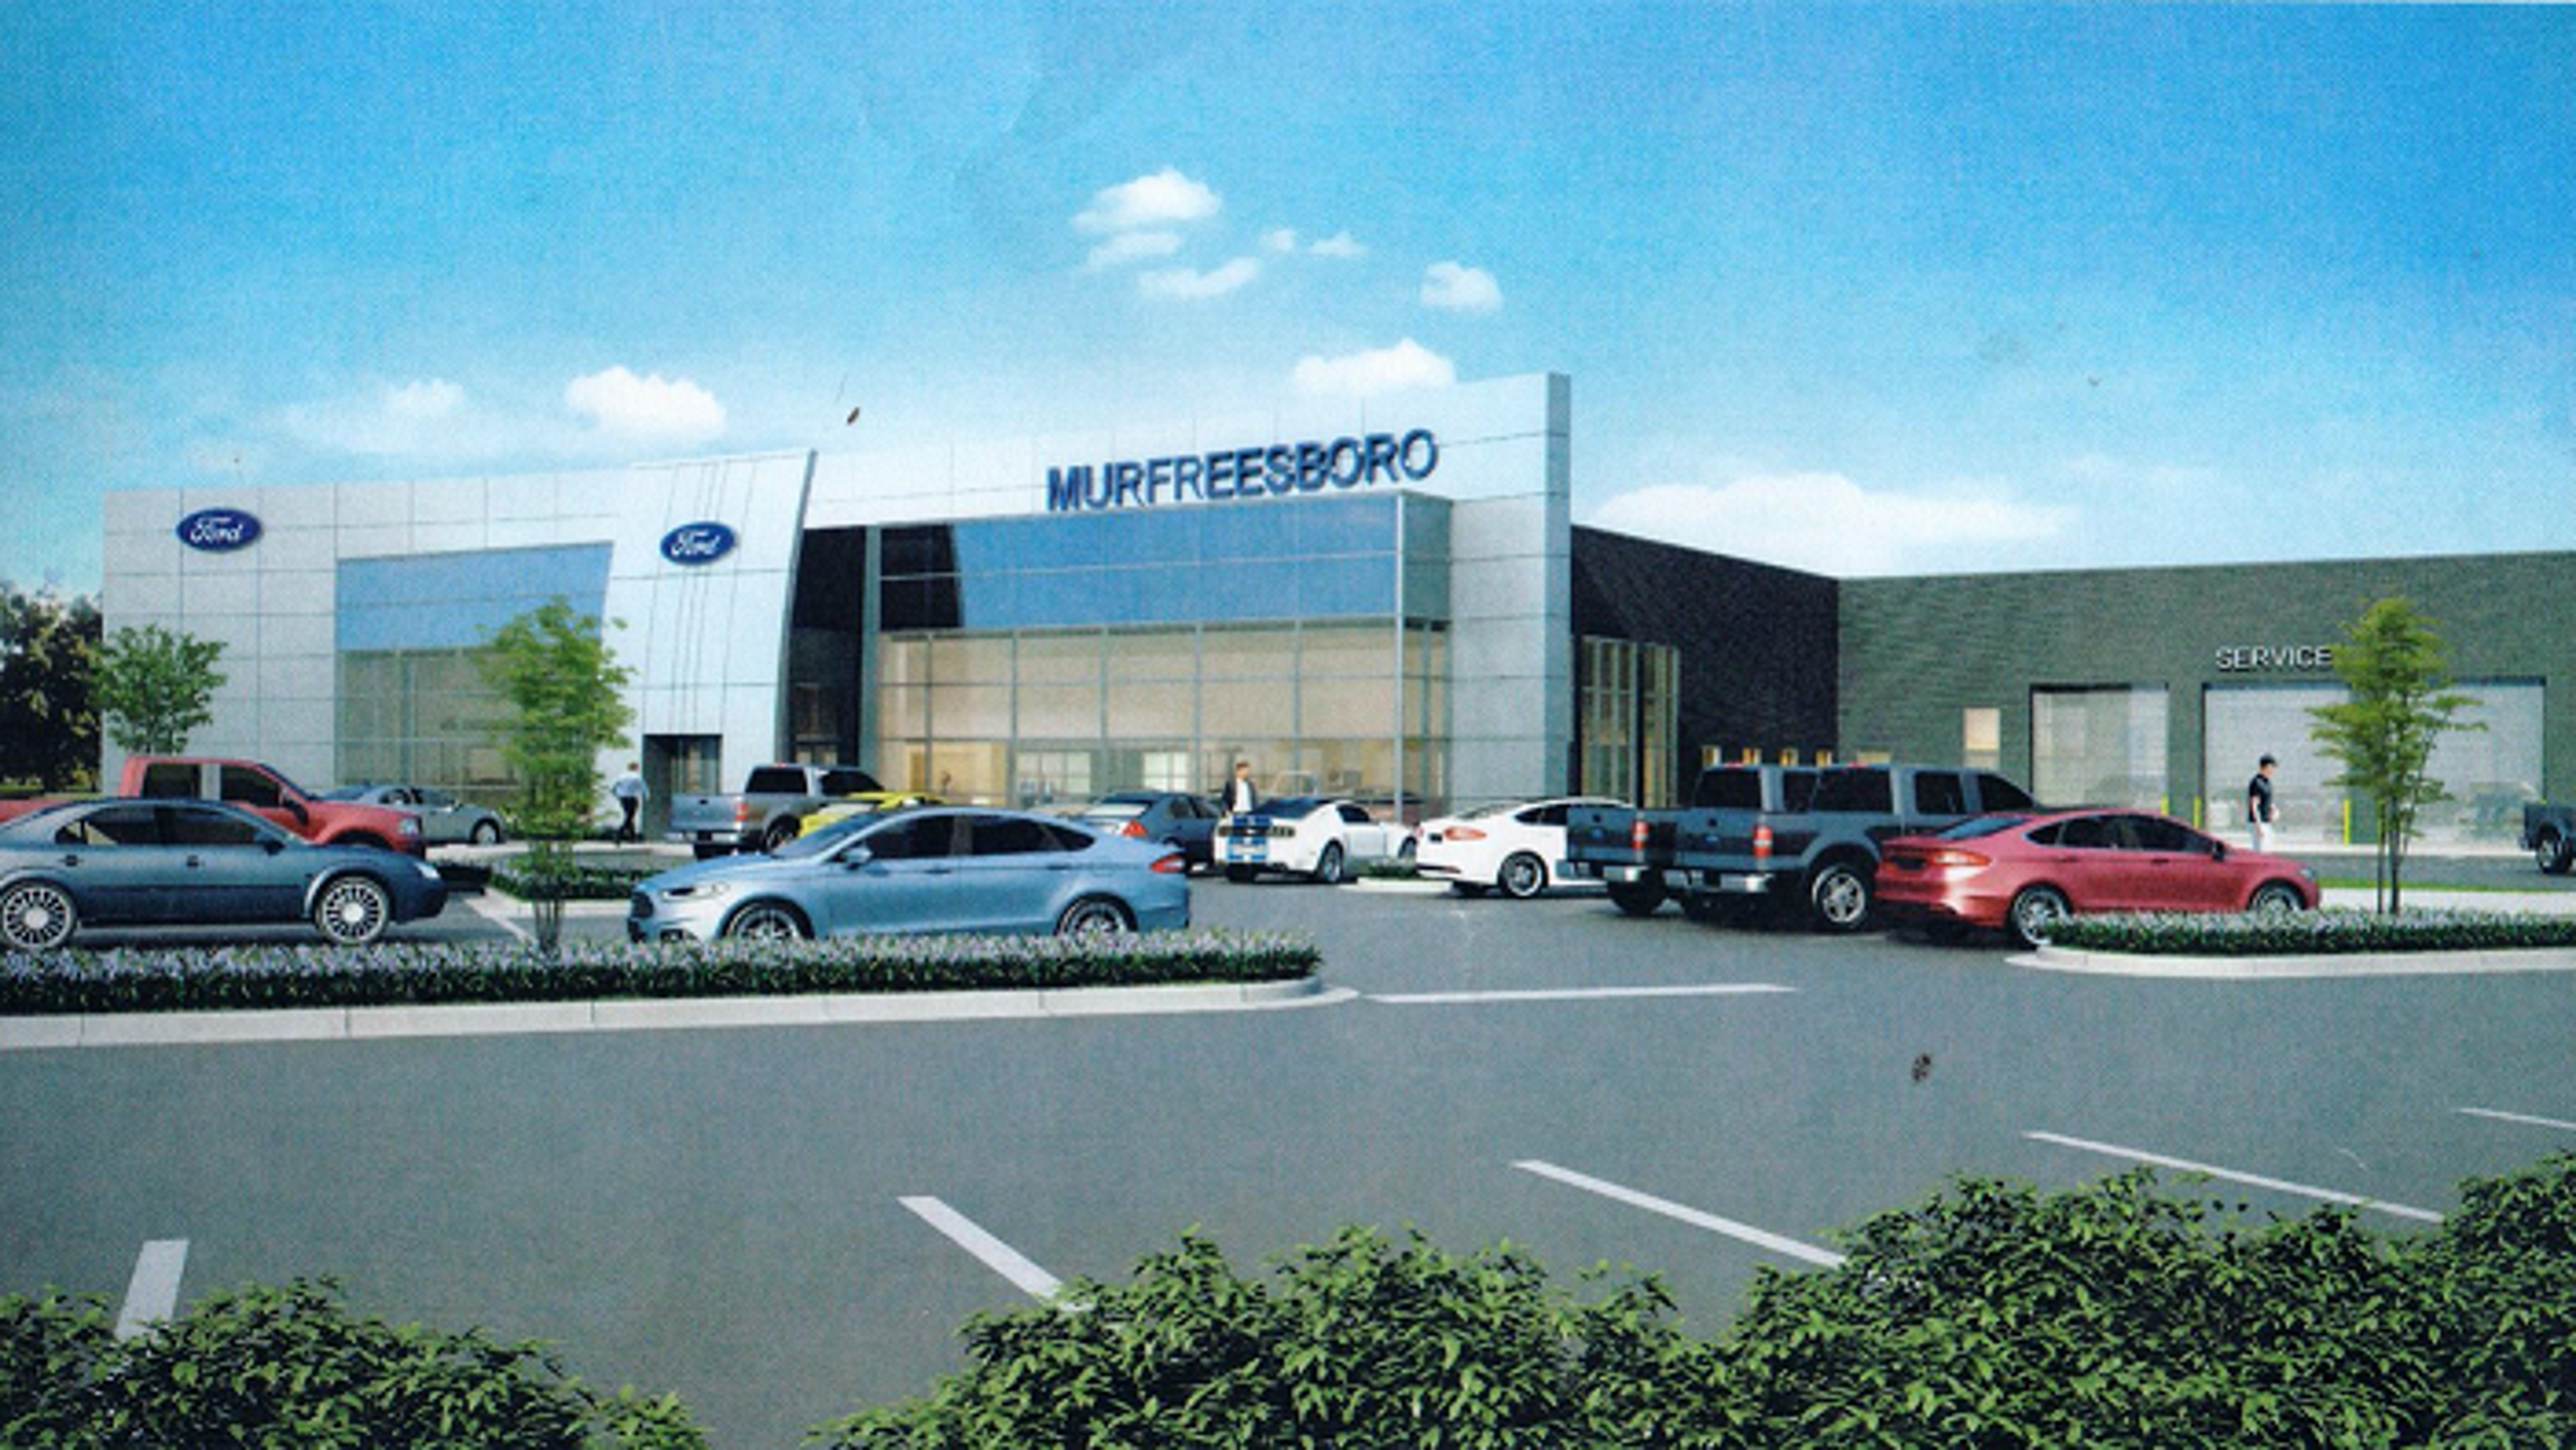 Ford of Murfreesboro breaks ground on new facility